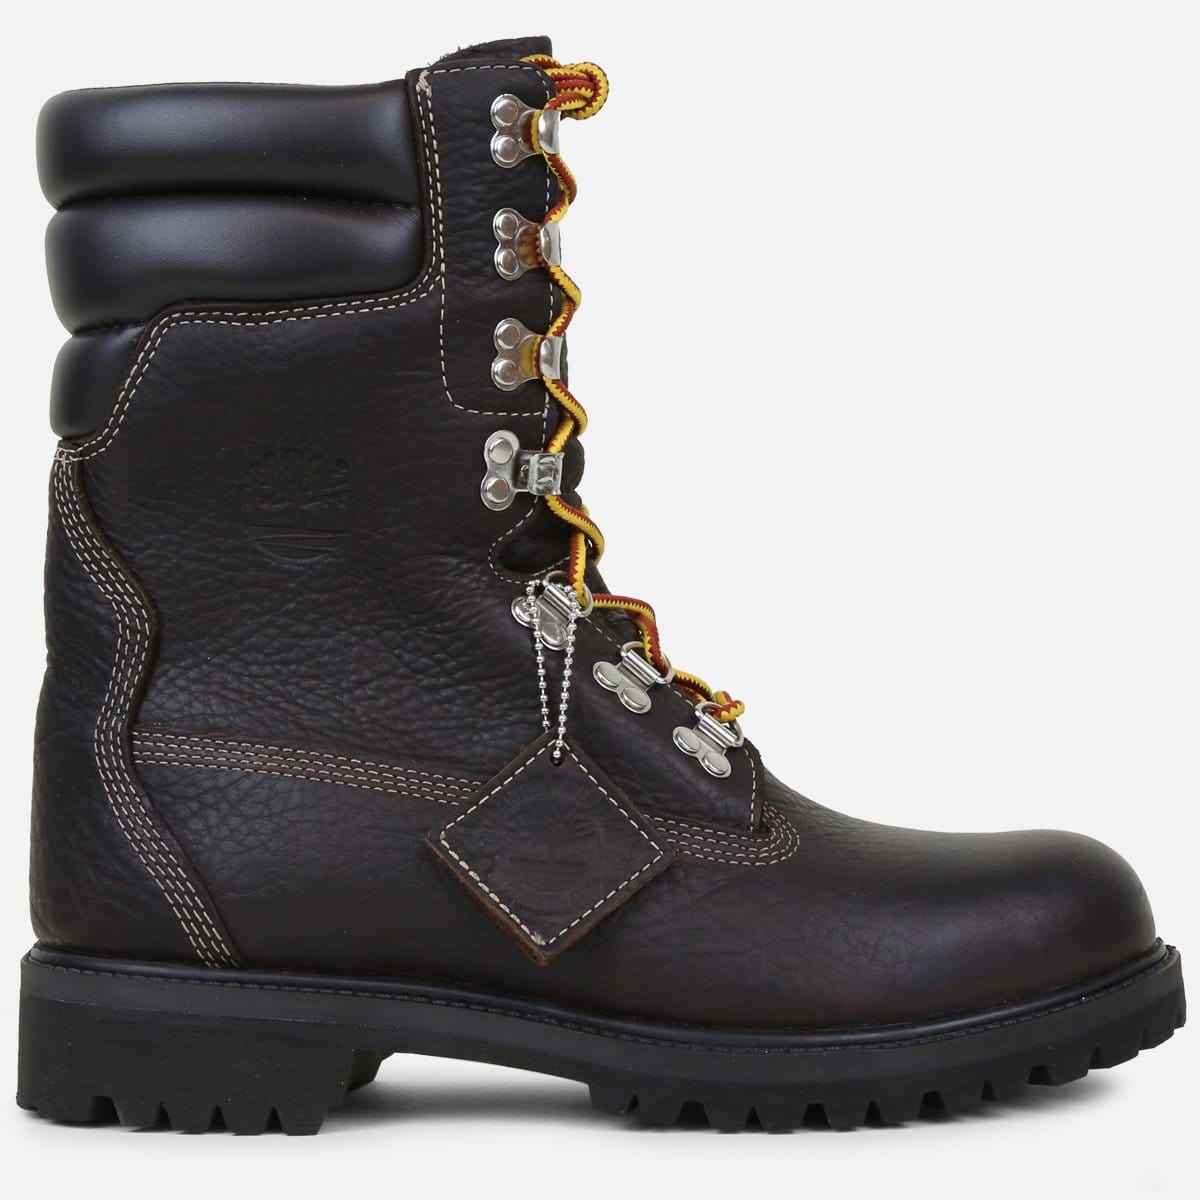 "WINTER EXTREME 9"" SUPERBOOT"